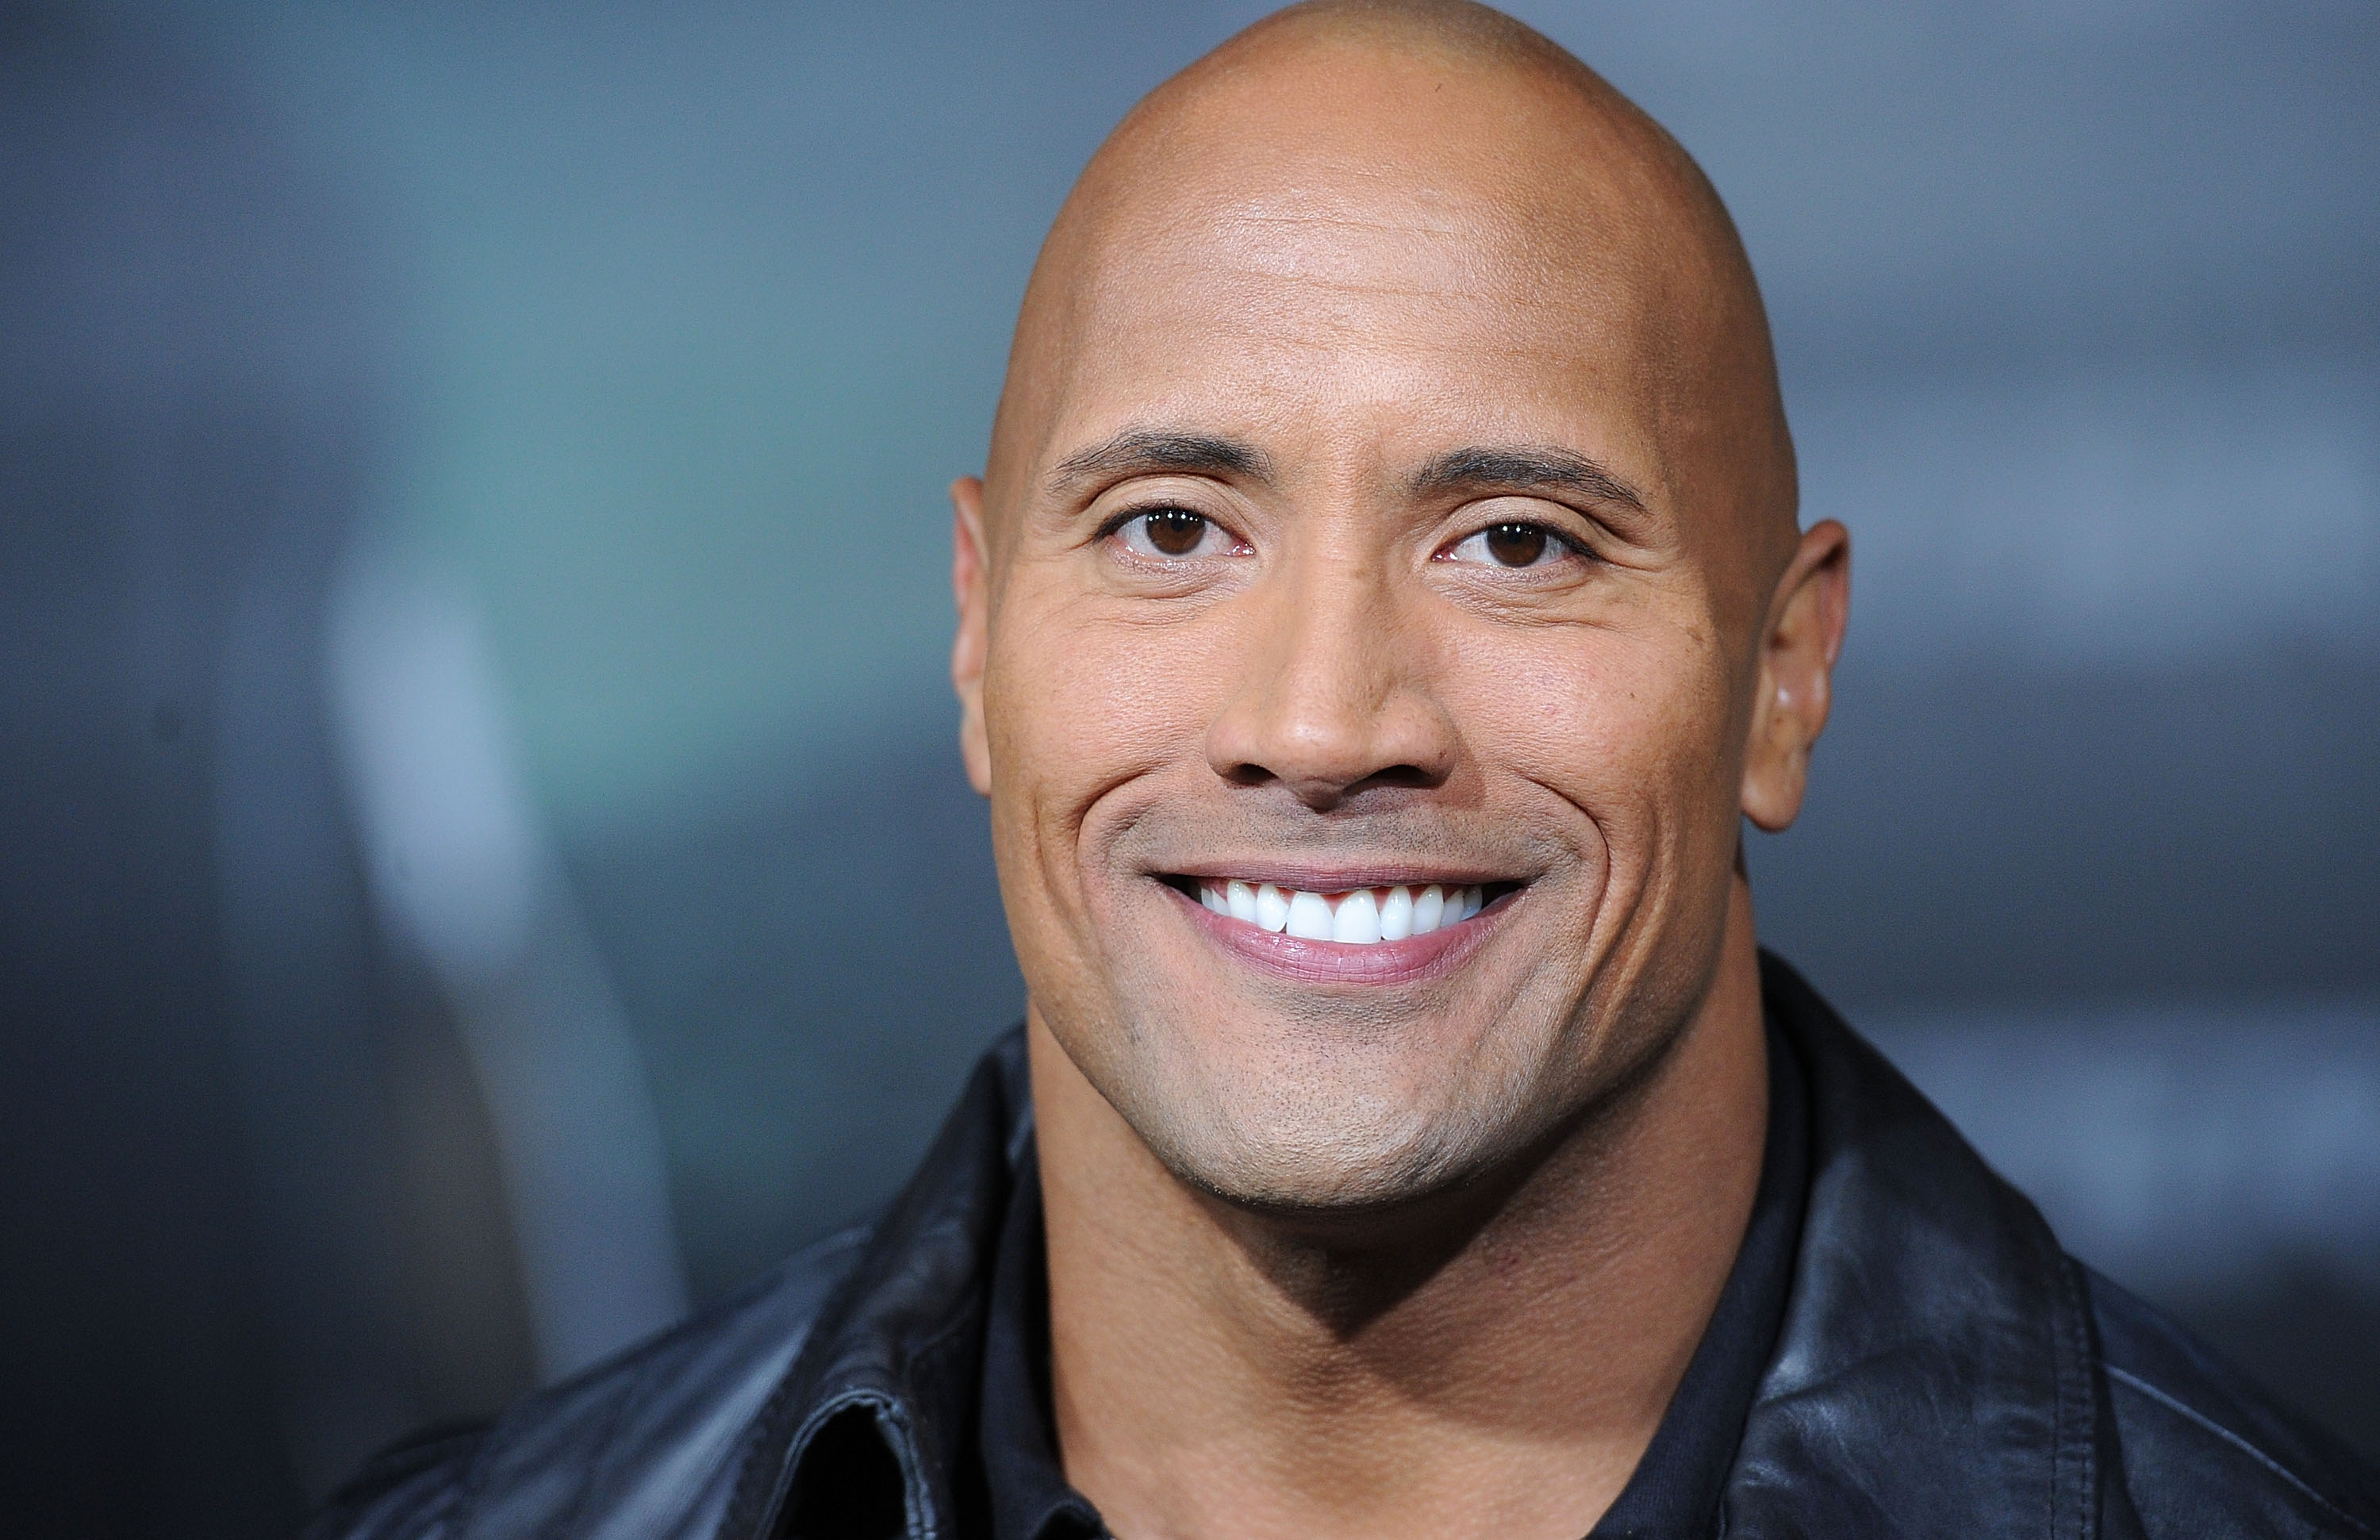 dwayne johnson forbes highest paid actor list